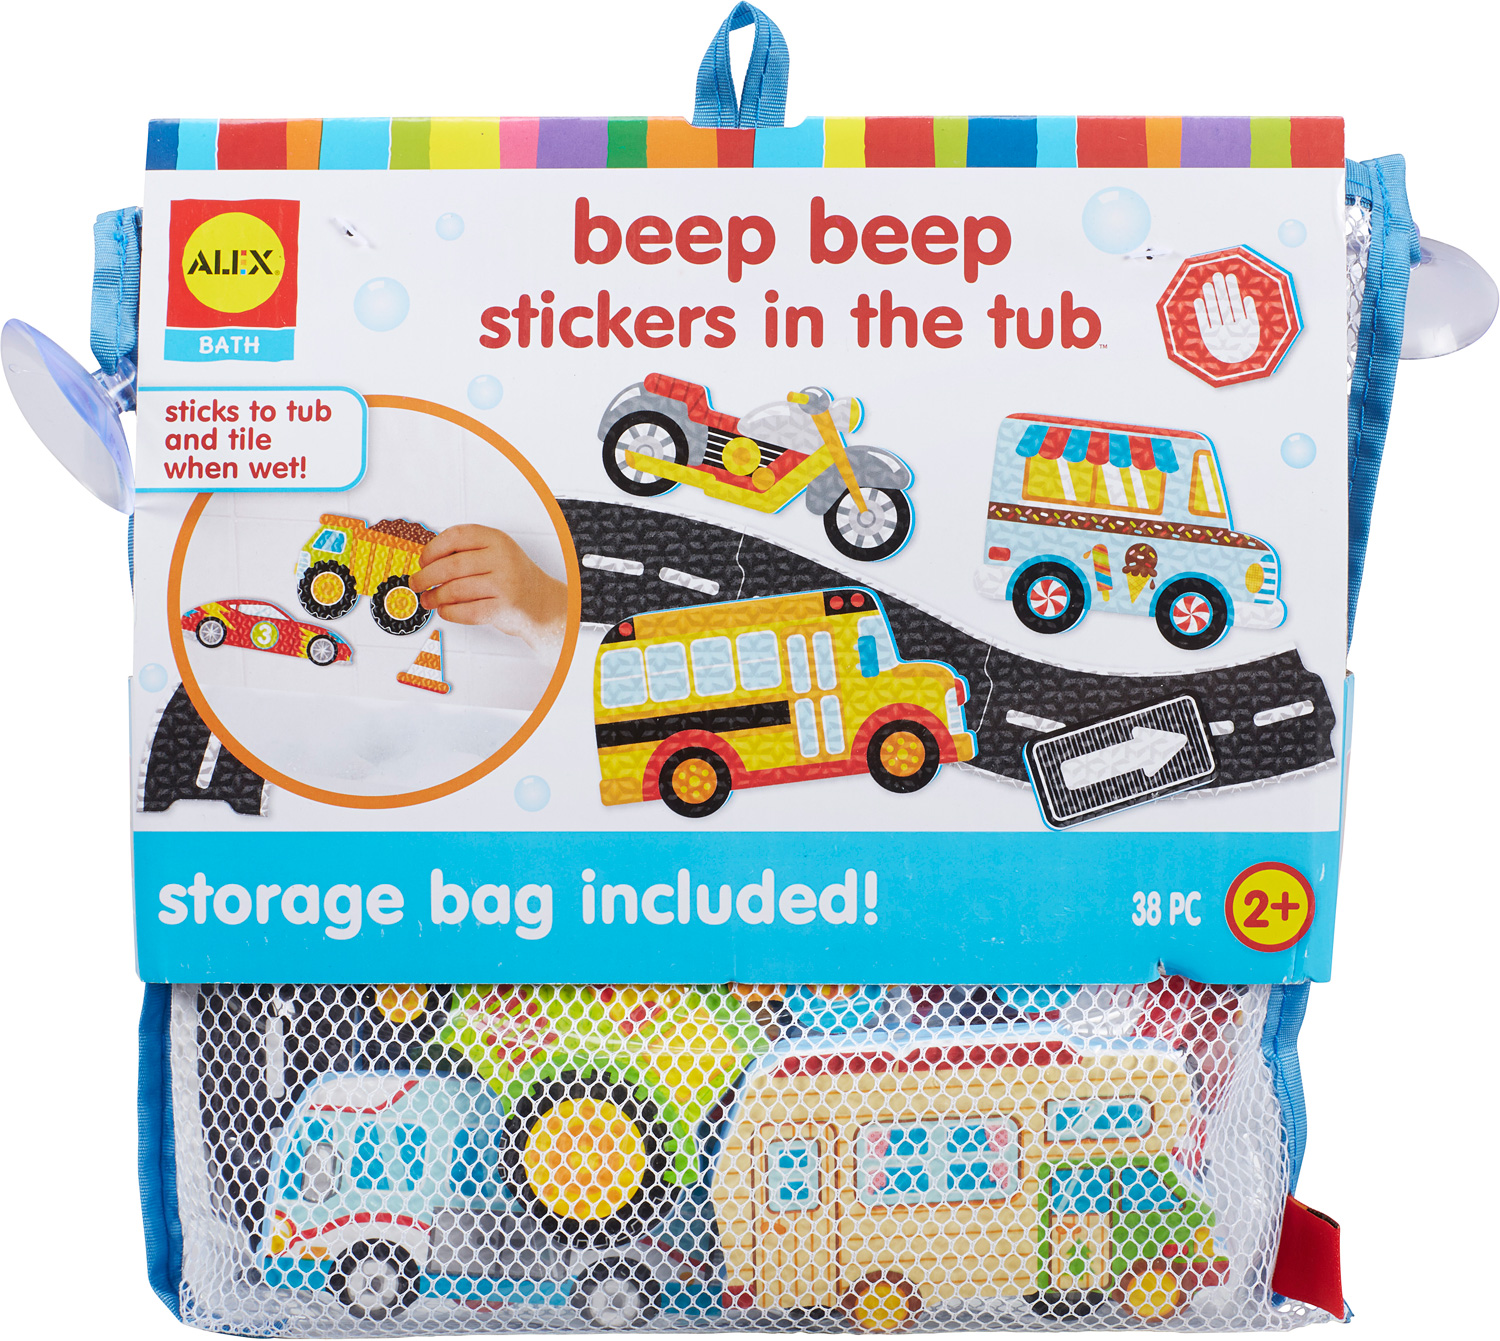 ALEX Bath Beep Beep Stickers in the Tub - The Wooden Toy